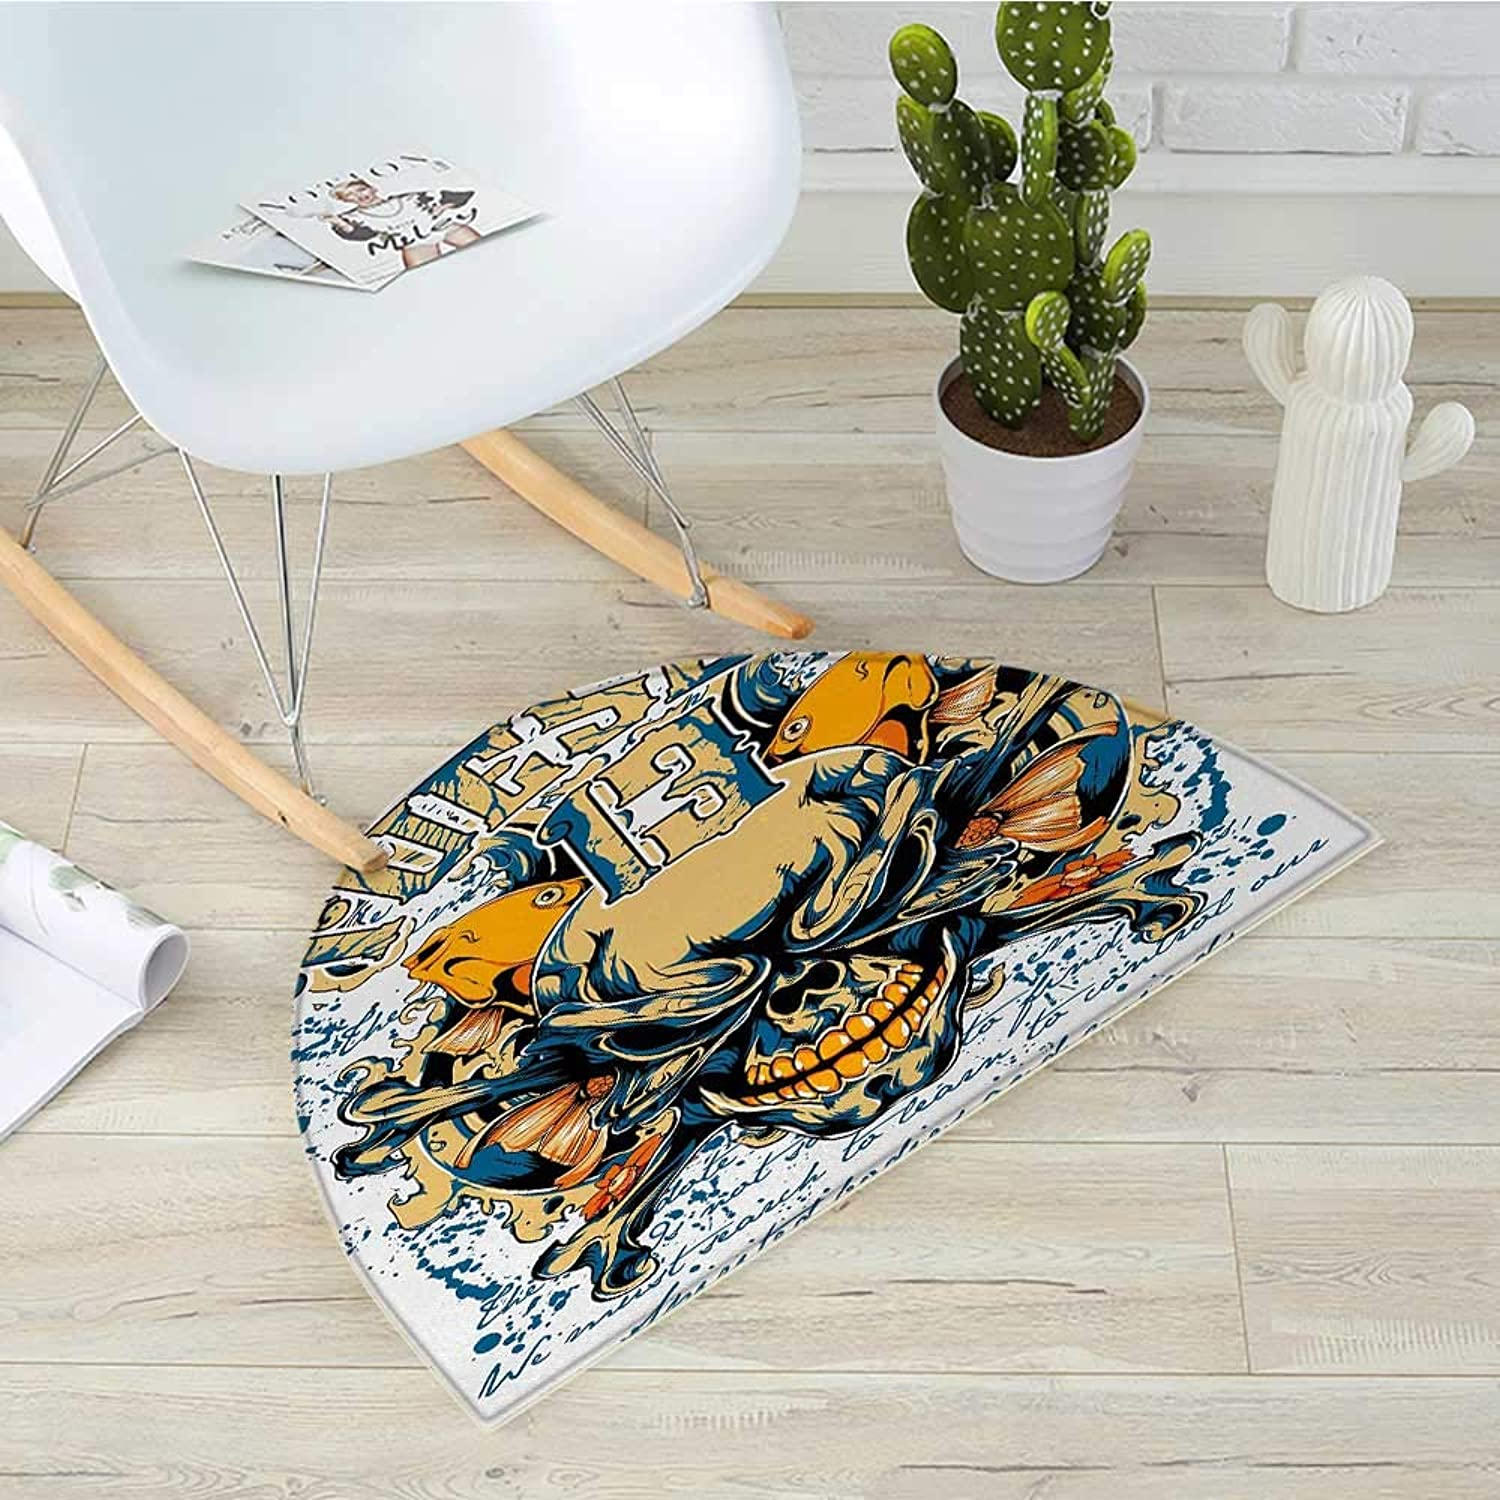 Skull Half Round Door mats Scary Skeleton Head Fishes Tuesday Thirteen Unlucky Day color Splashes Bathroom Mat H 31.5  xD 47.2  bluee Pale Yellow orange